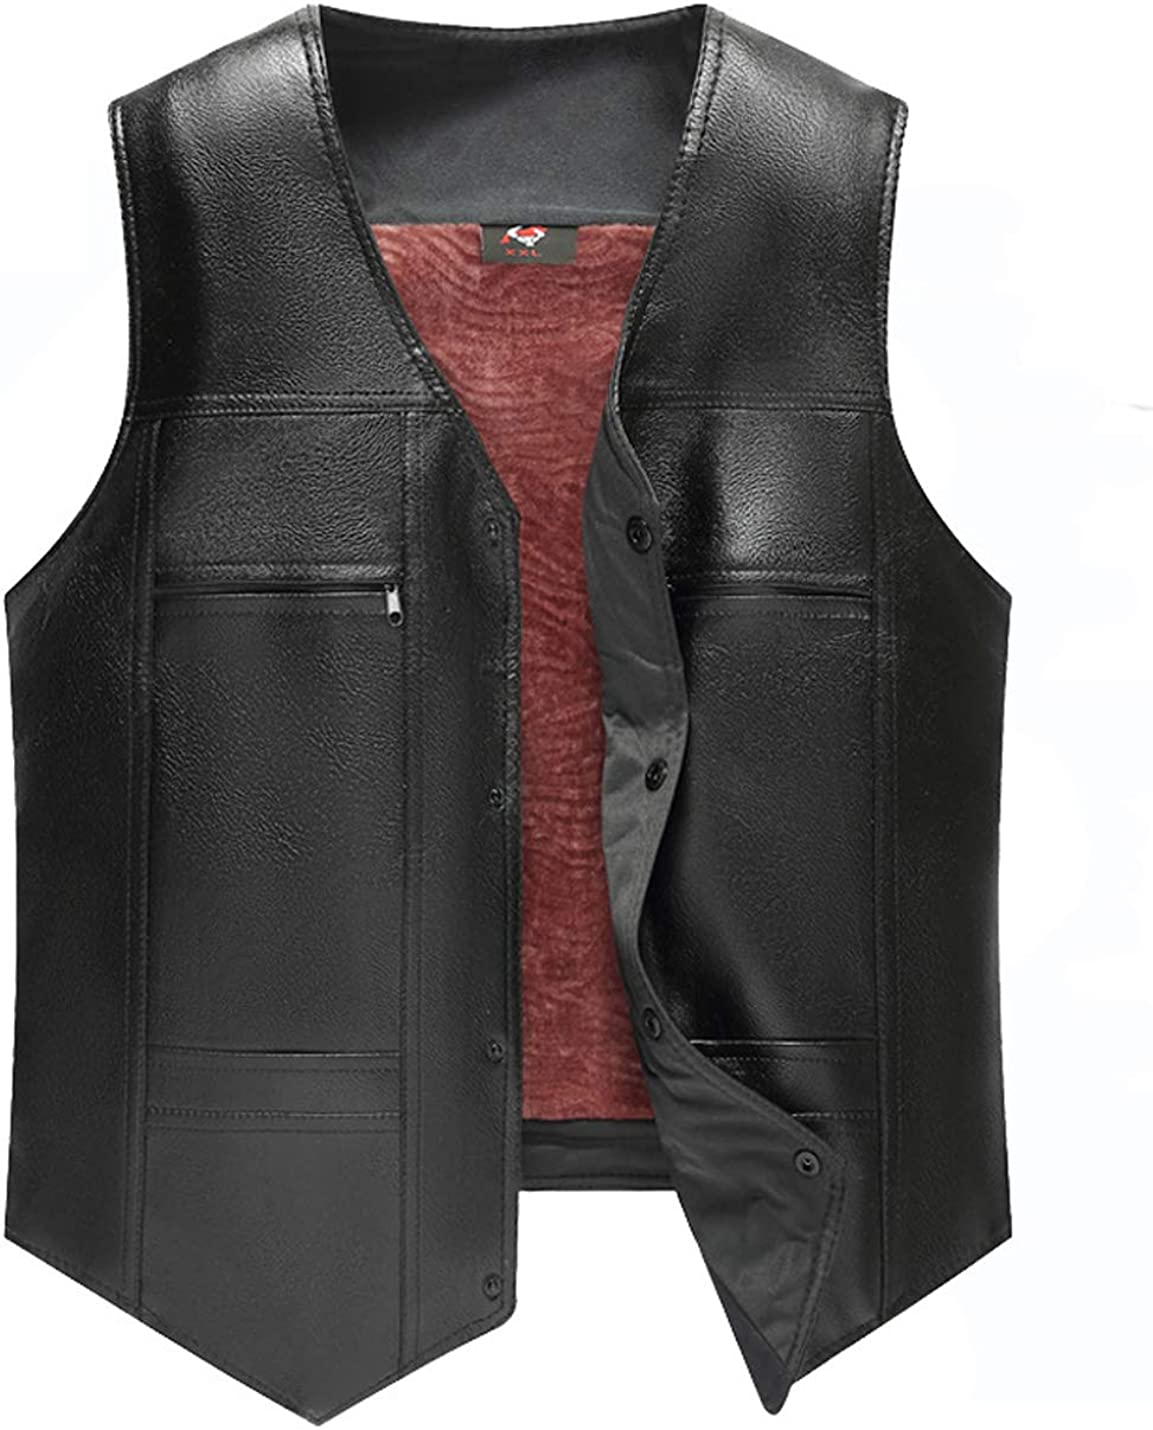 Gihuo Men's Warm Thickened Fleece Lined Motorcycle Leather Vest Sleeveless Jacket